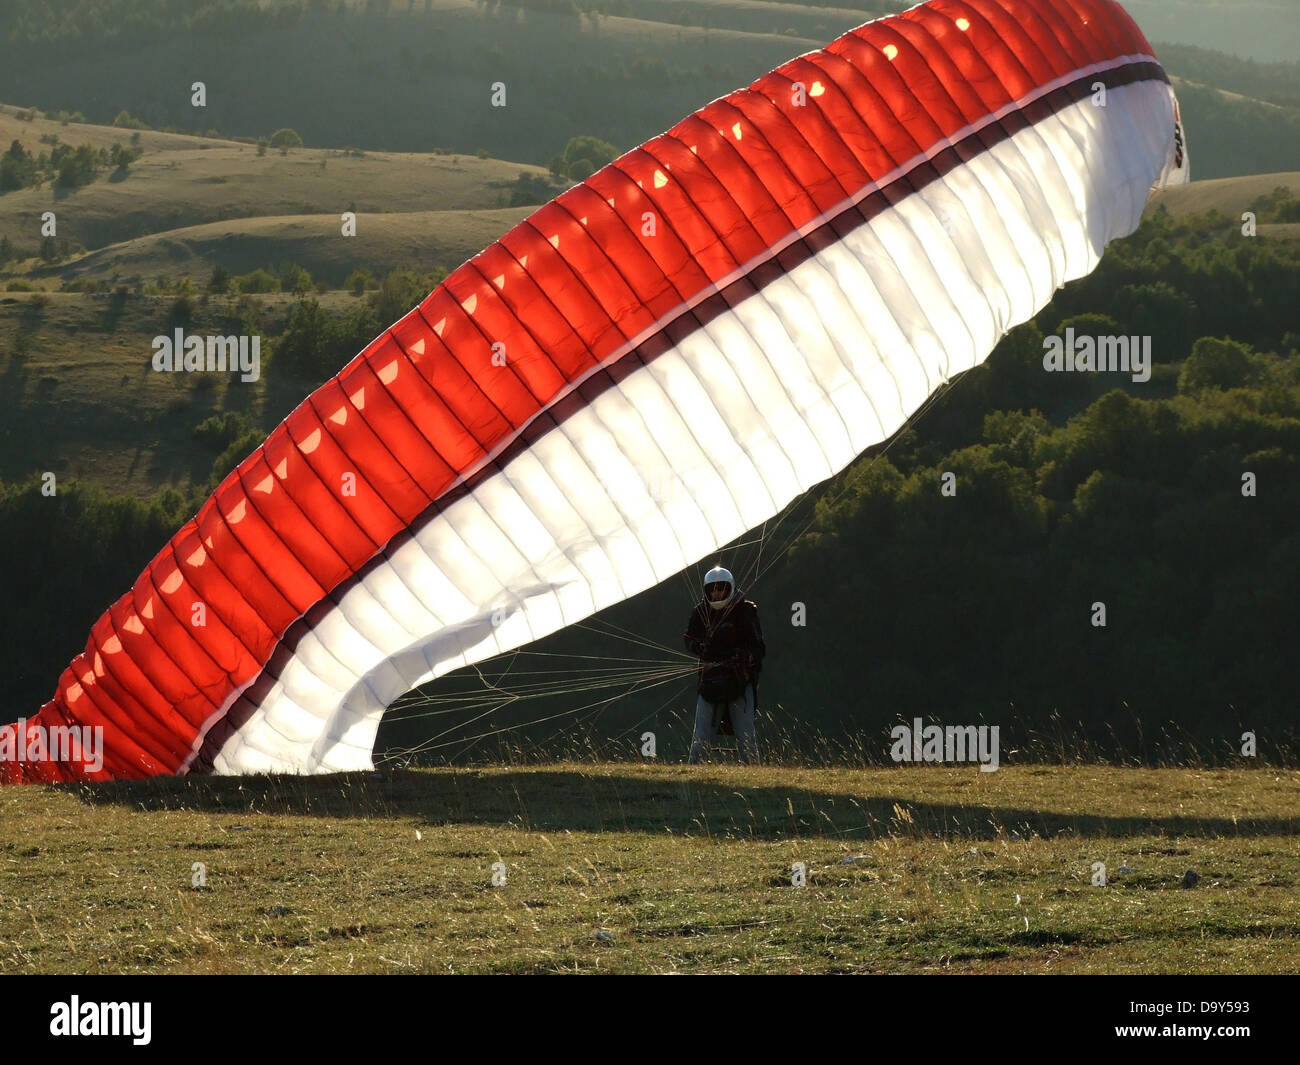 Parachute paracadute extreme sport sport wind Immagini Stock